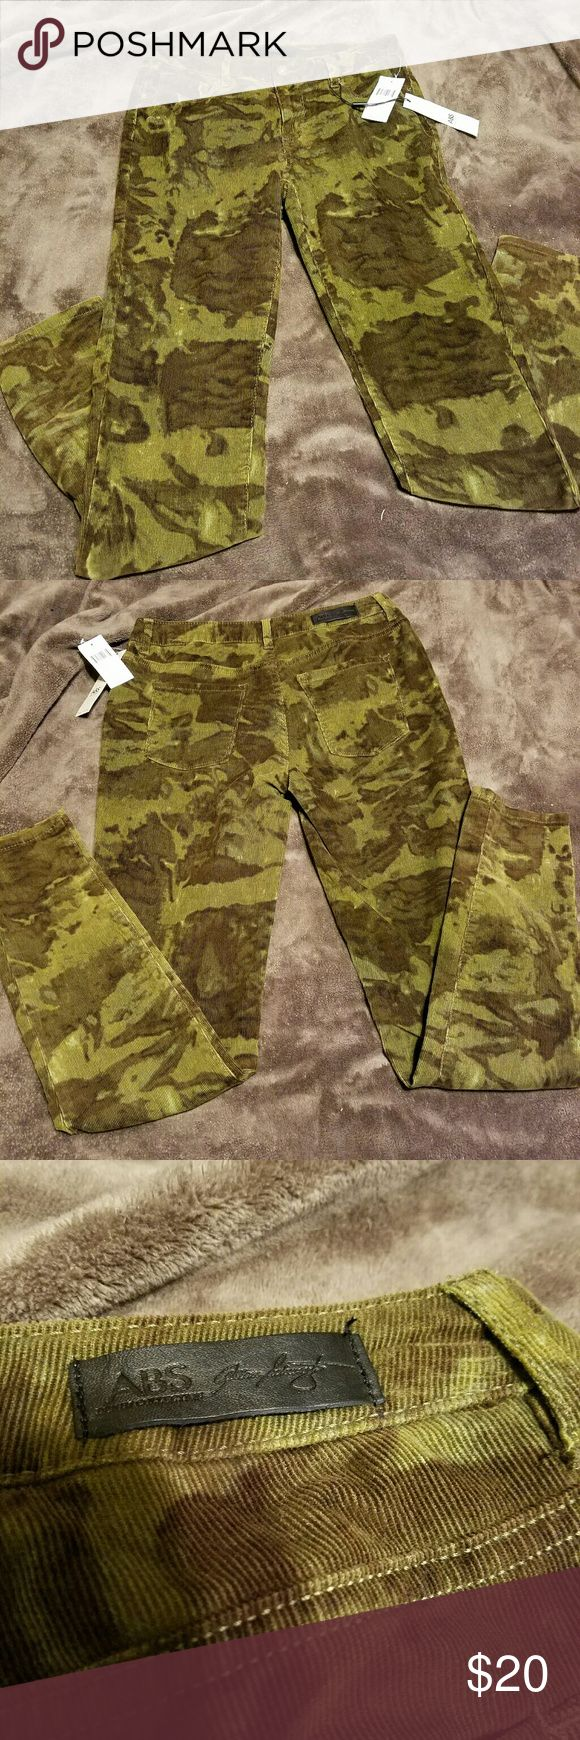 Corduroy camouflage skinny pants Every girl must have a piece of camouflage clothing in their closet!! Bring out the inner bad ass in these camo corduroy skinny pants!! NWT by ABS Allen Schwartz. Im in love with these!! :) ABS Allen Schwartz Pants Leggings